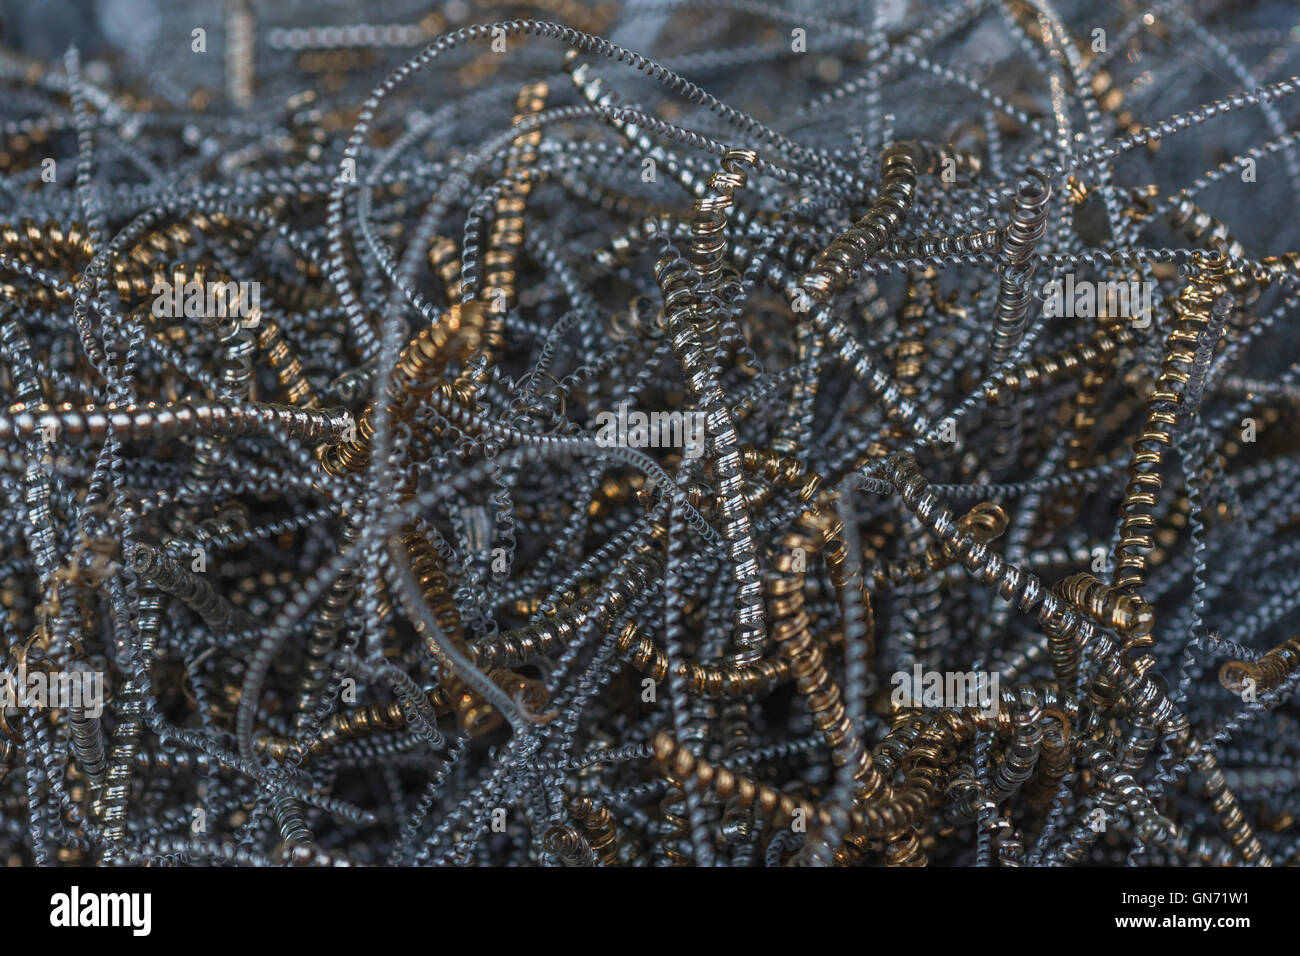 Close shot of metal turnings / industrial swarf from CNC machining operations. Industrial waste, metal waste. Spiralling - Stock Image